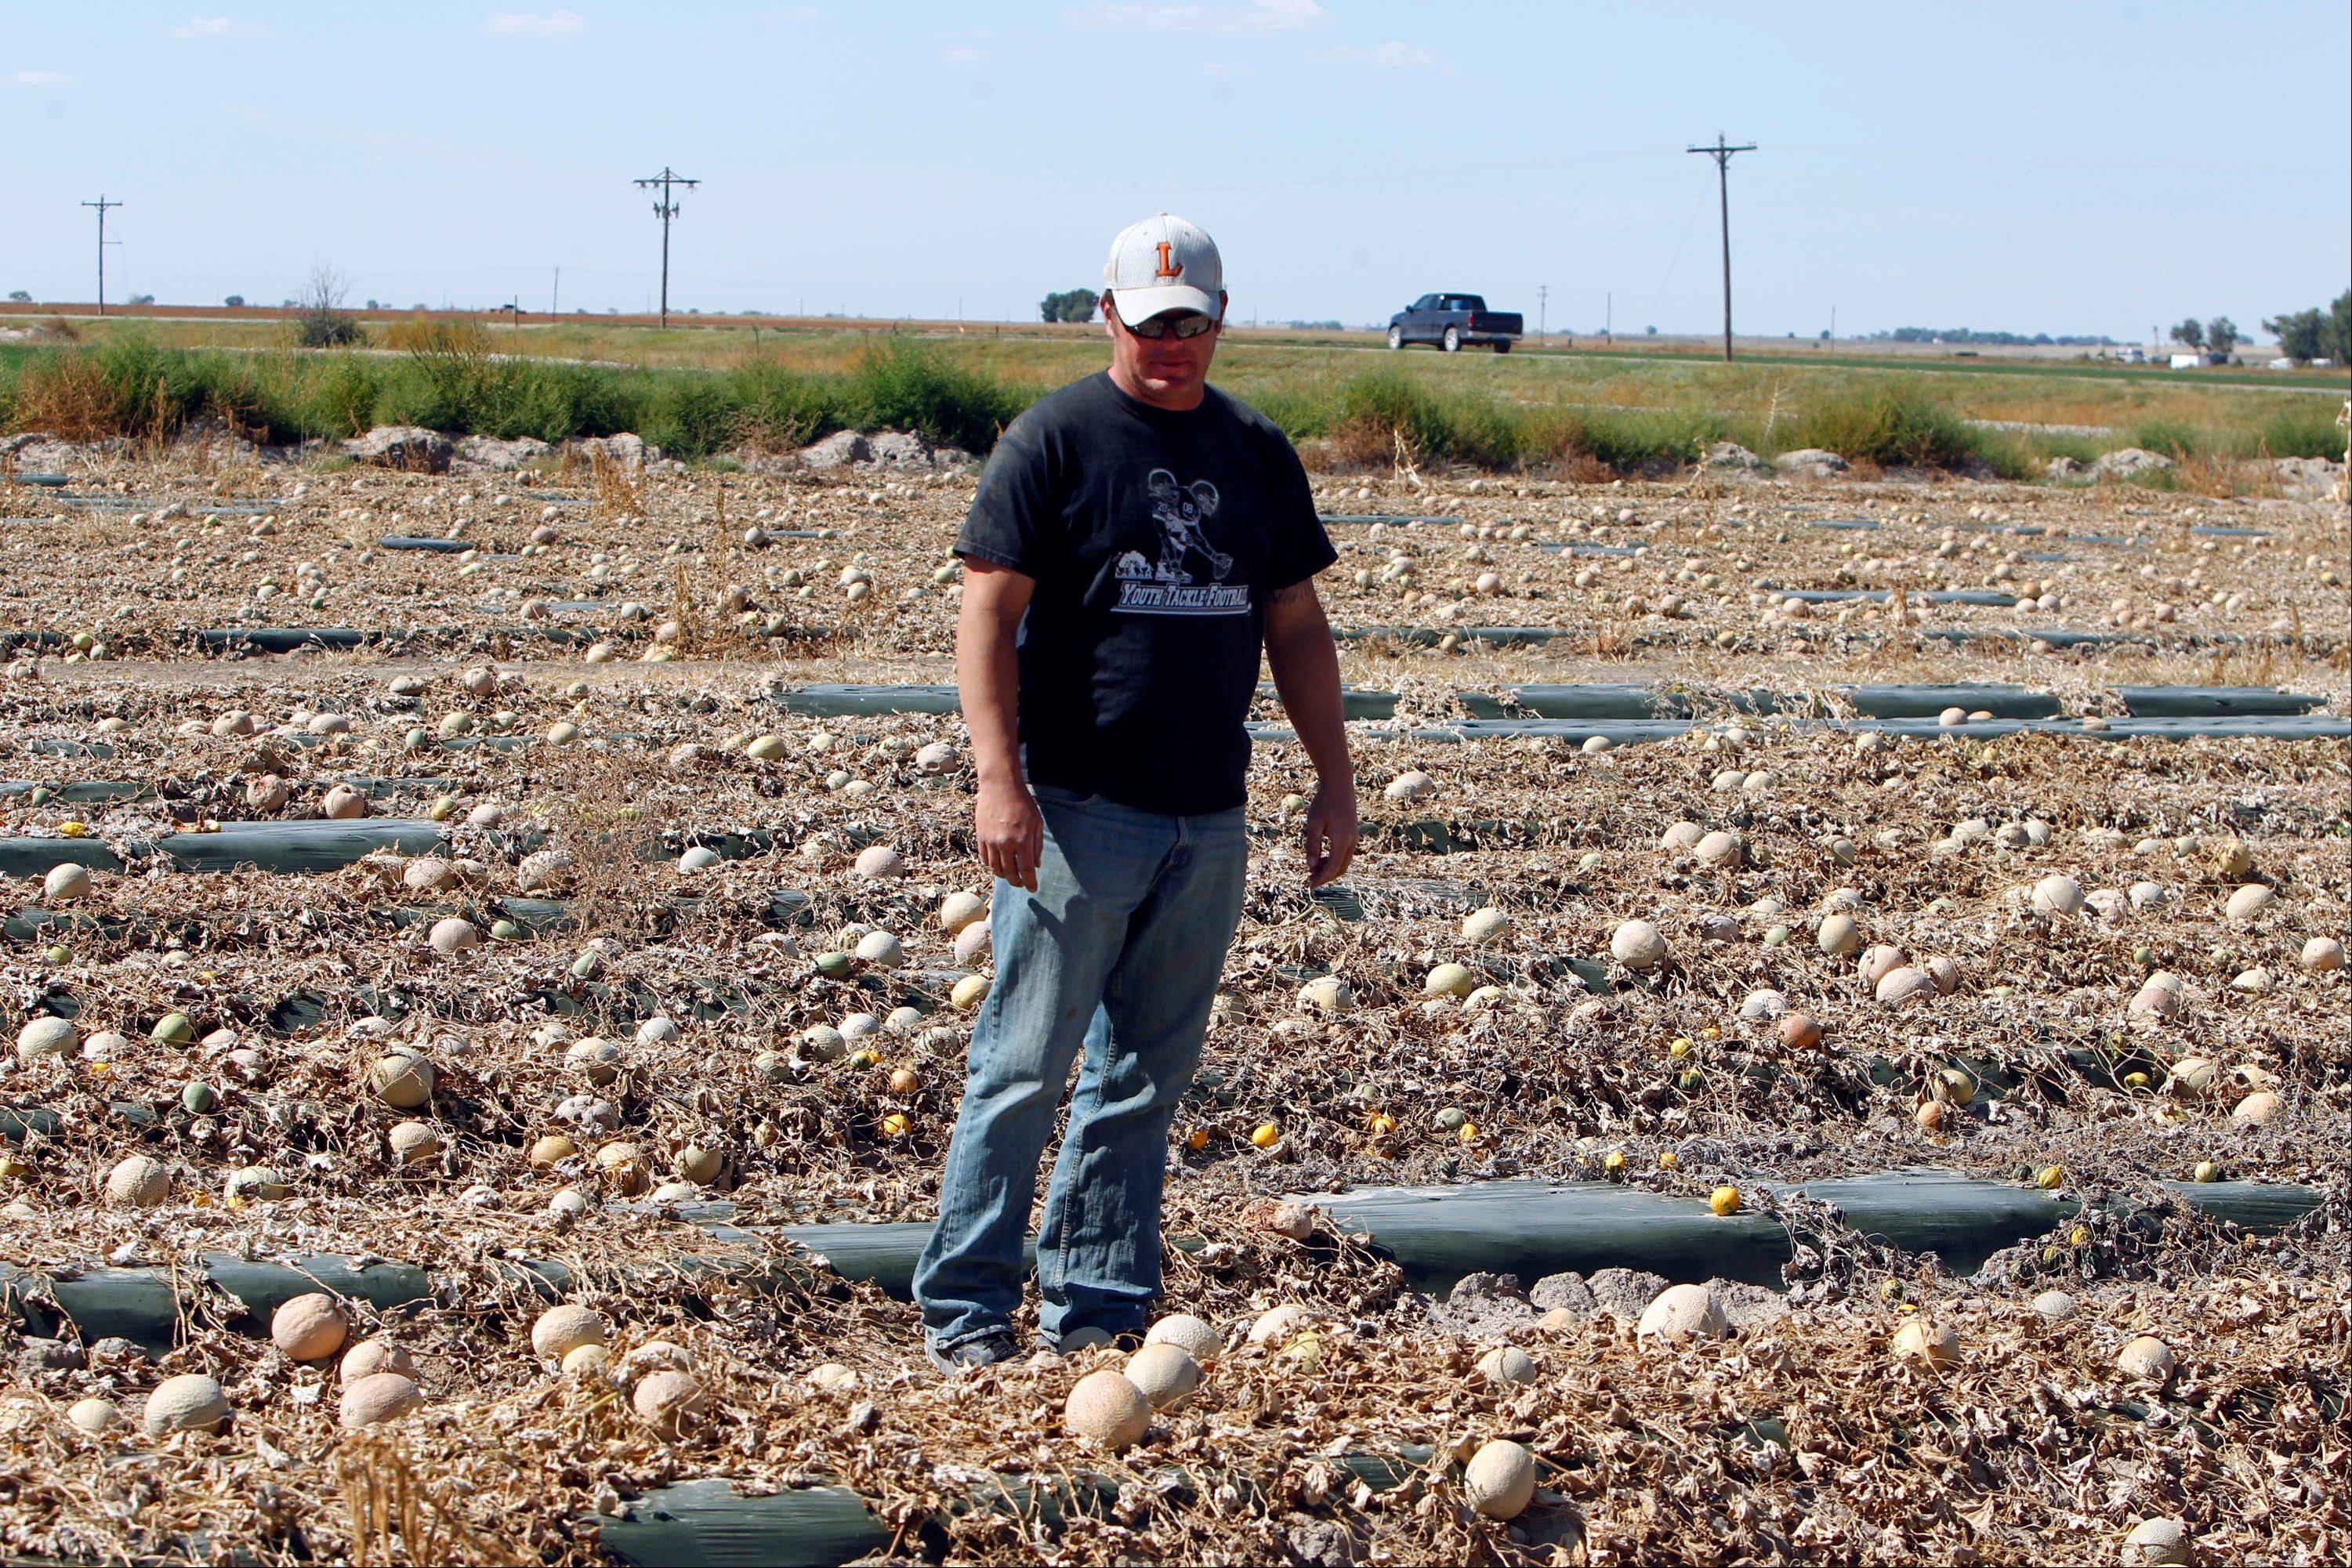 Eric Jensen walks a field with rotting cantaloupes on the Jensen Farms near Holly, Colo. Eric and his brother Ryan own Jensen Farms that has been identified as the source of the national listeria outbreak that has killed more than a dozen people so far.